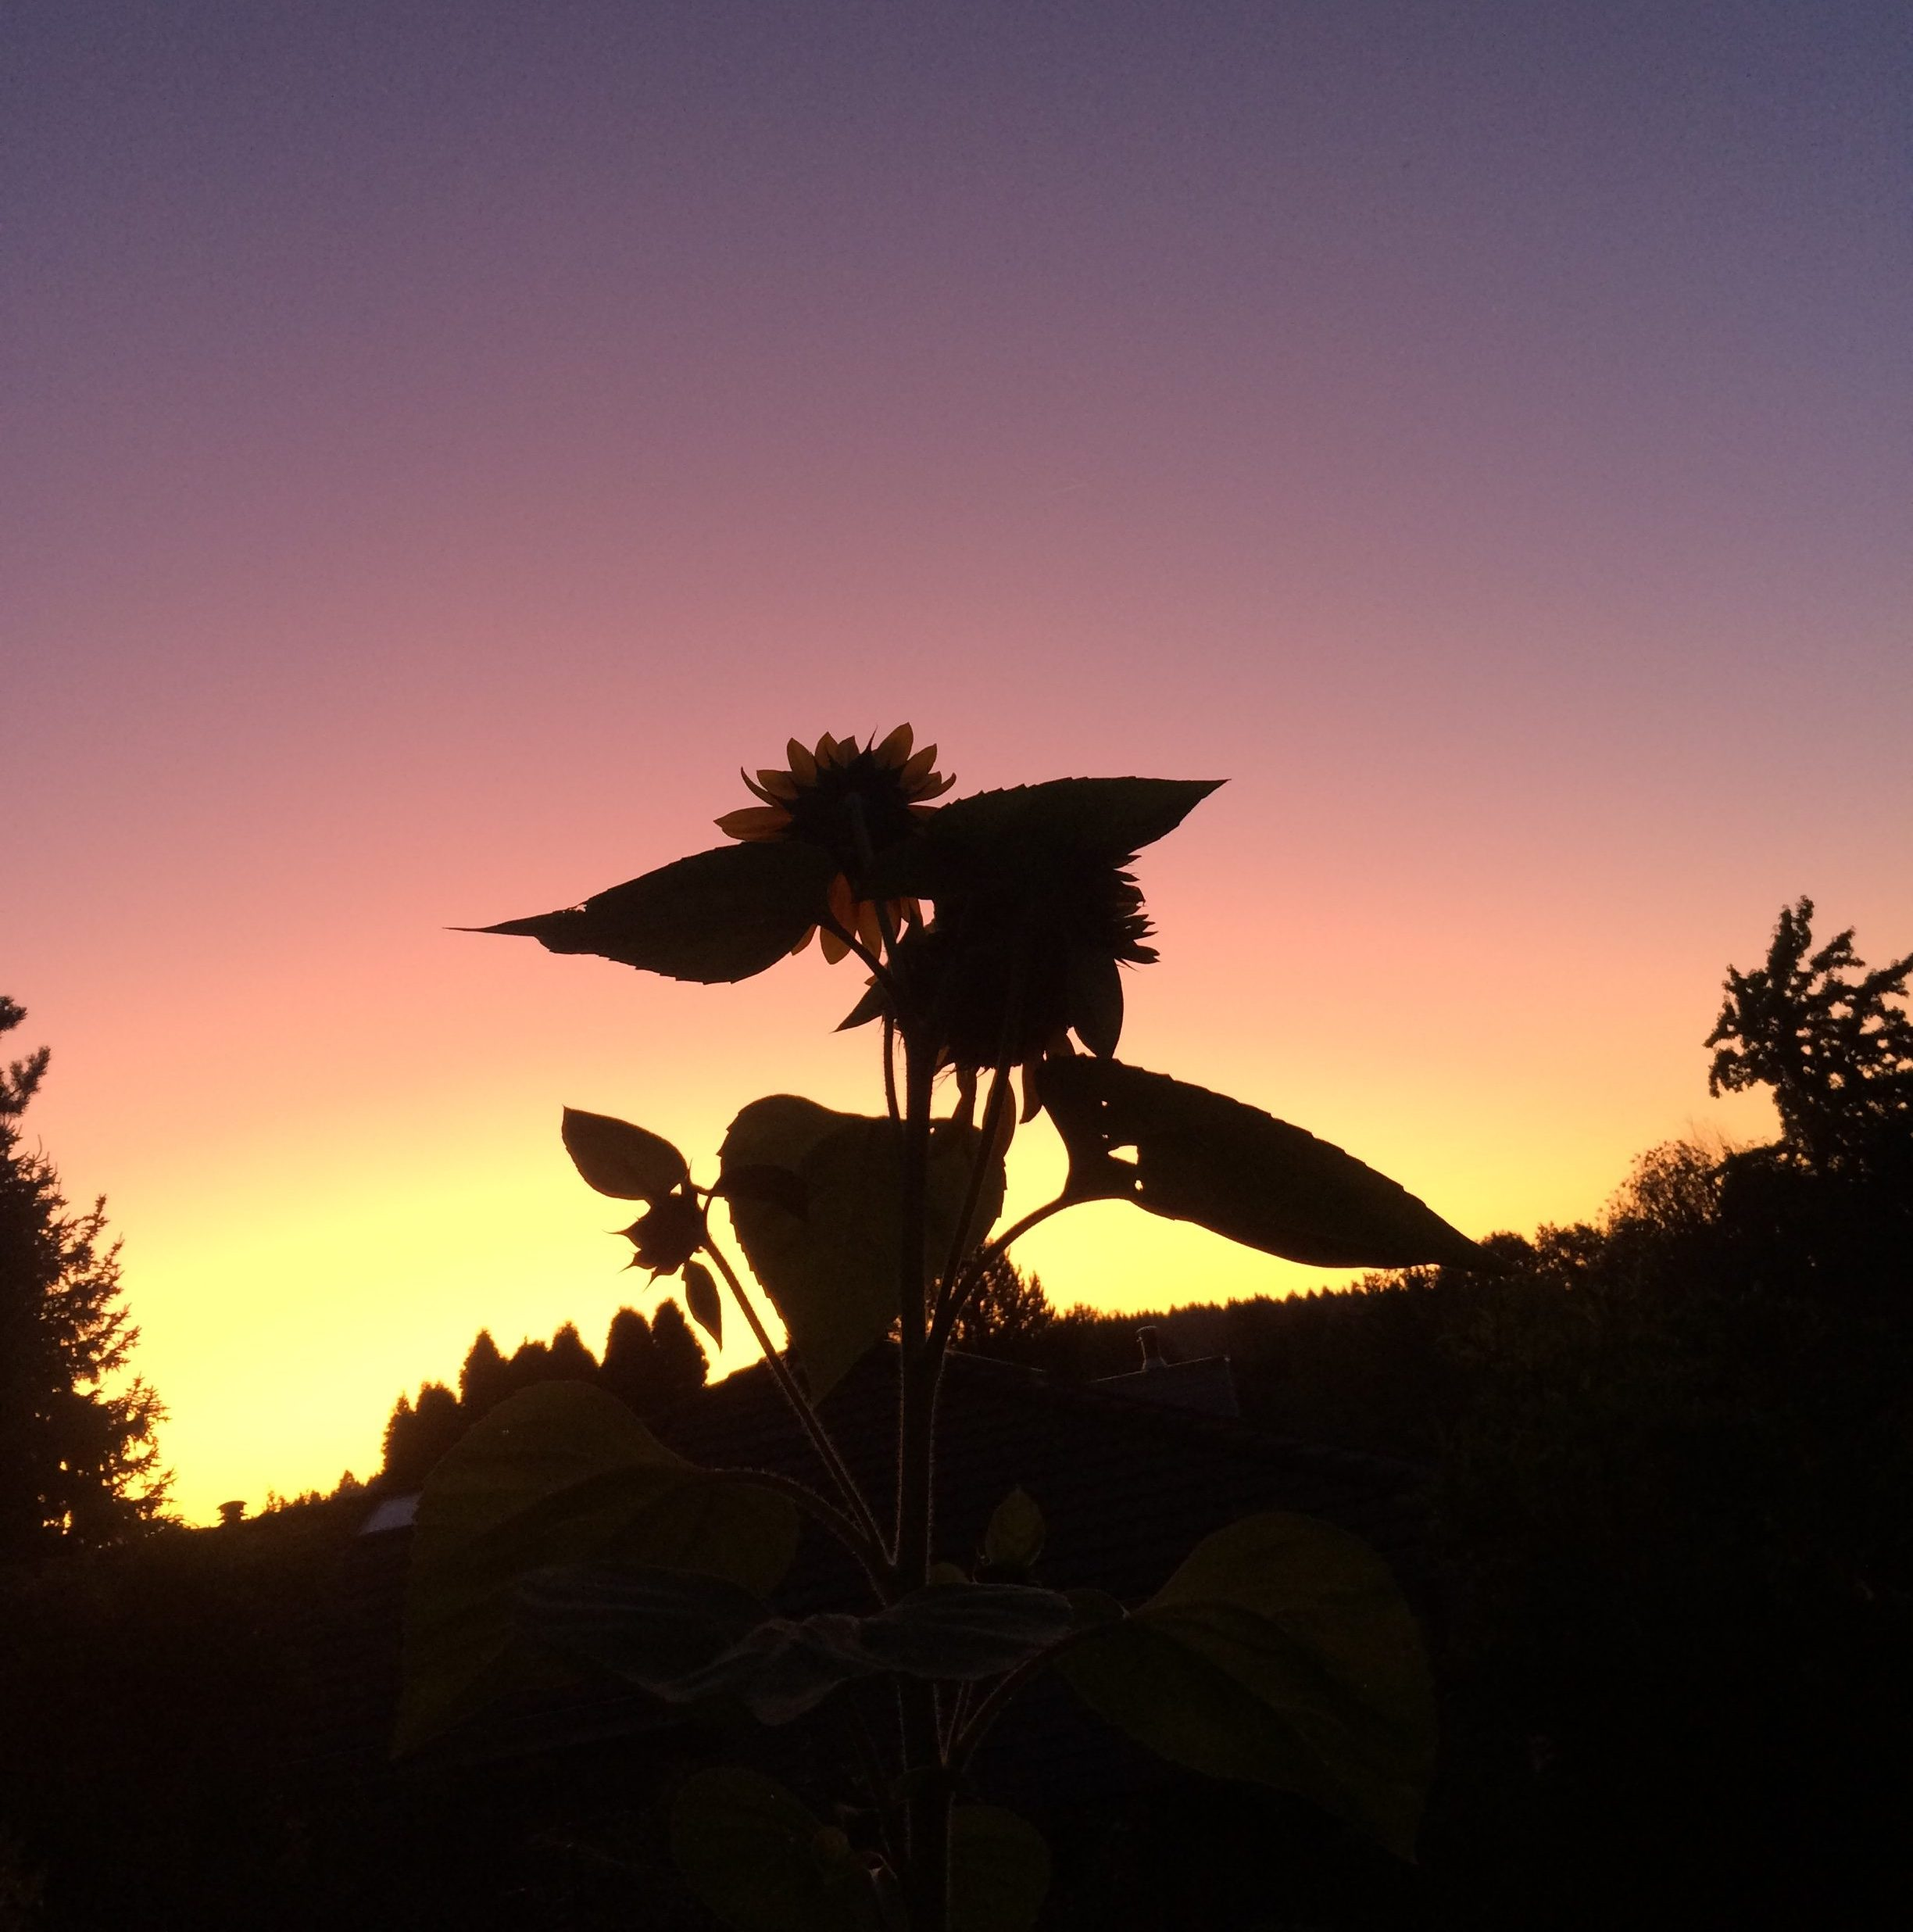 Sunflower Sunrise